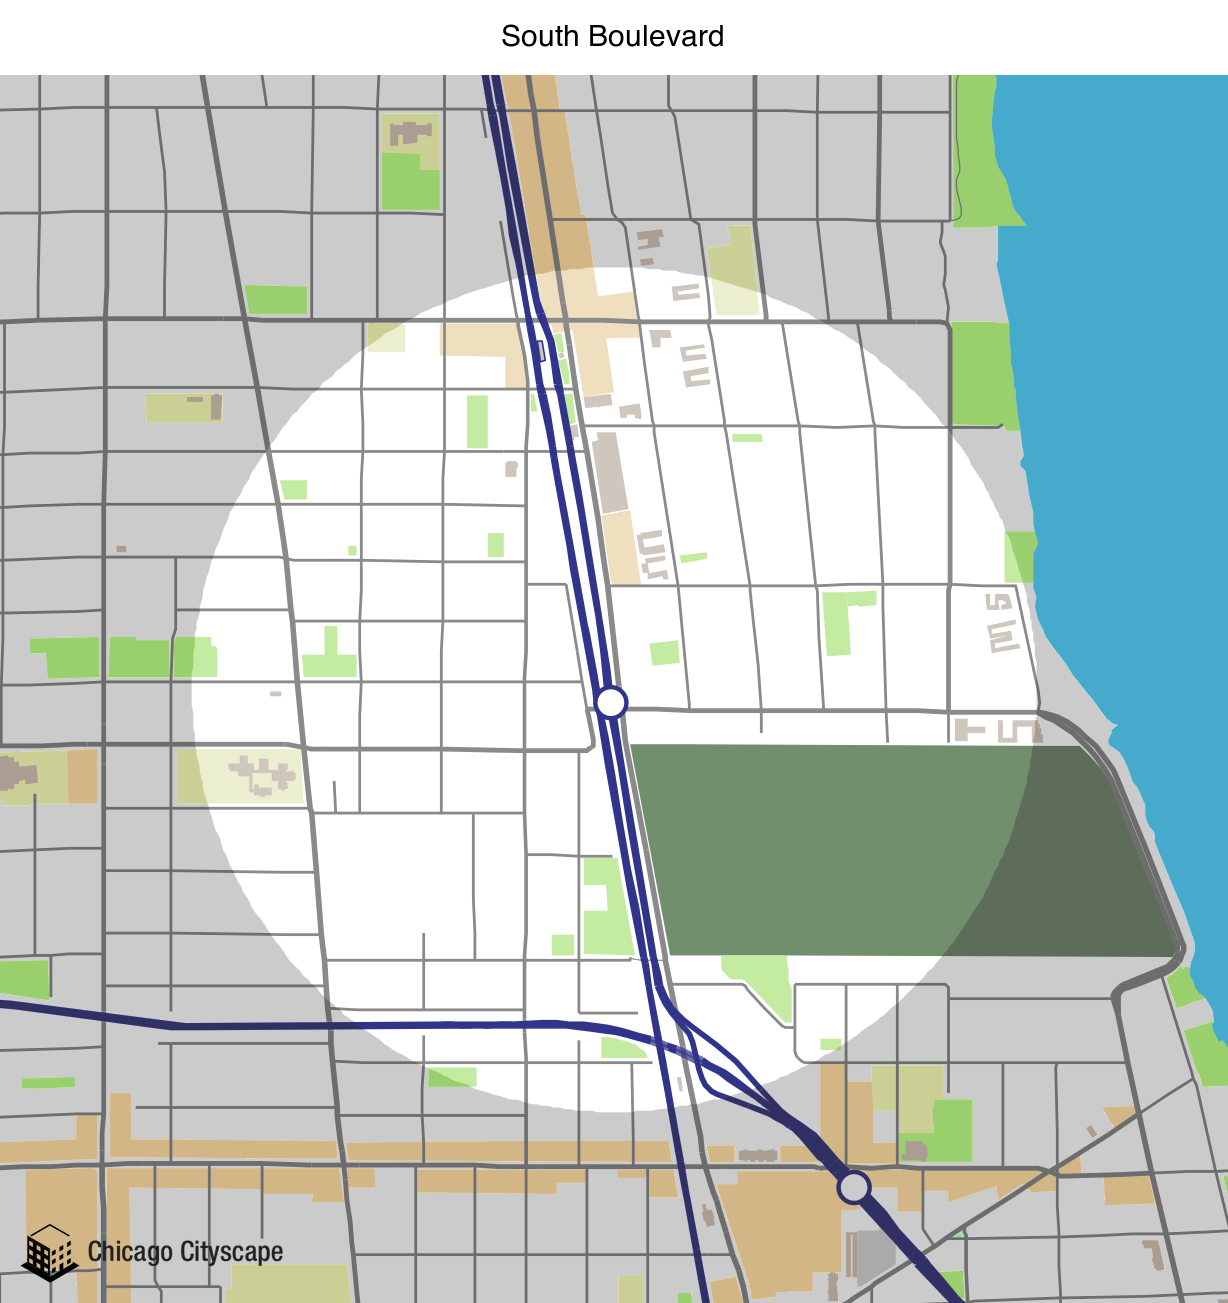 Evanston Subway Map.Chicago Cityscape Map Of Building Projects Properties And